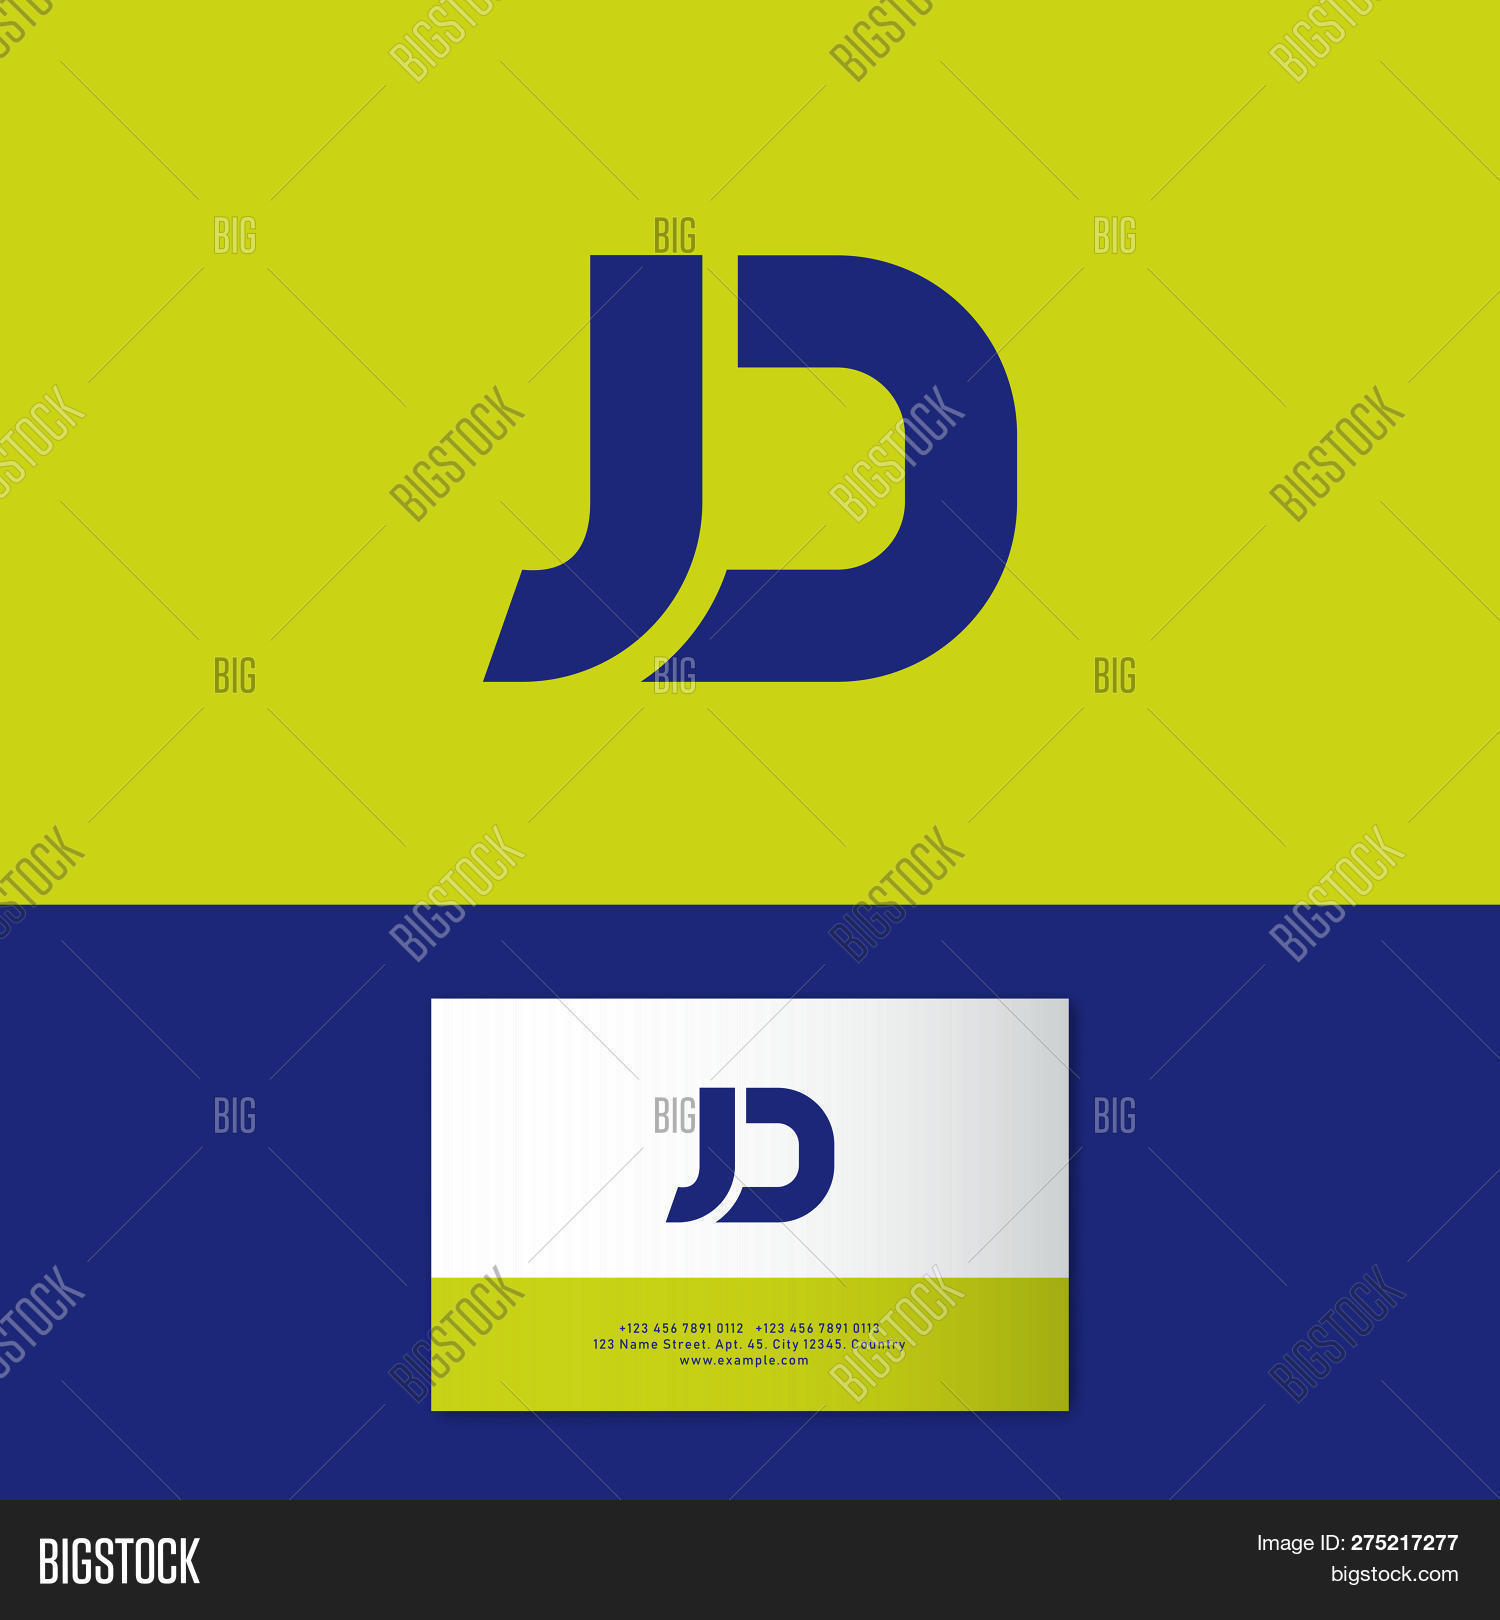 j d blue letters j d vector photo free trial bigstock j d blue letters j d vector photo